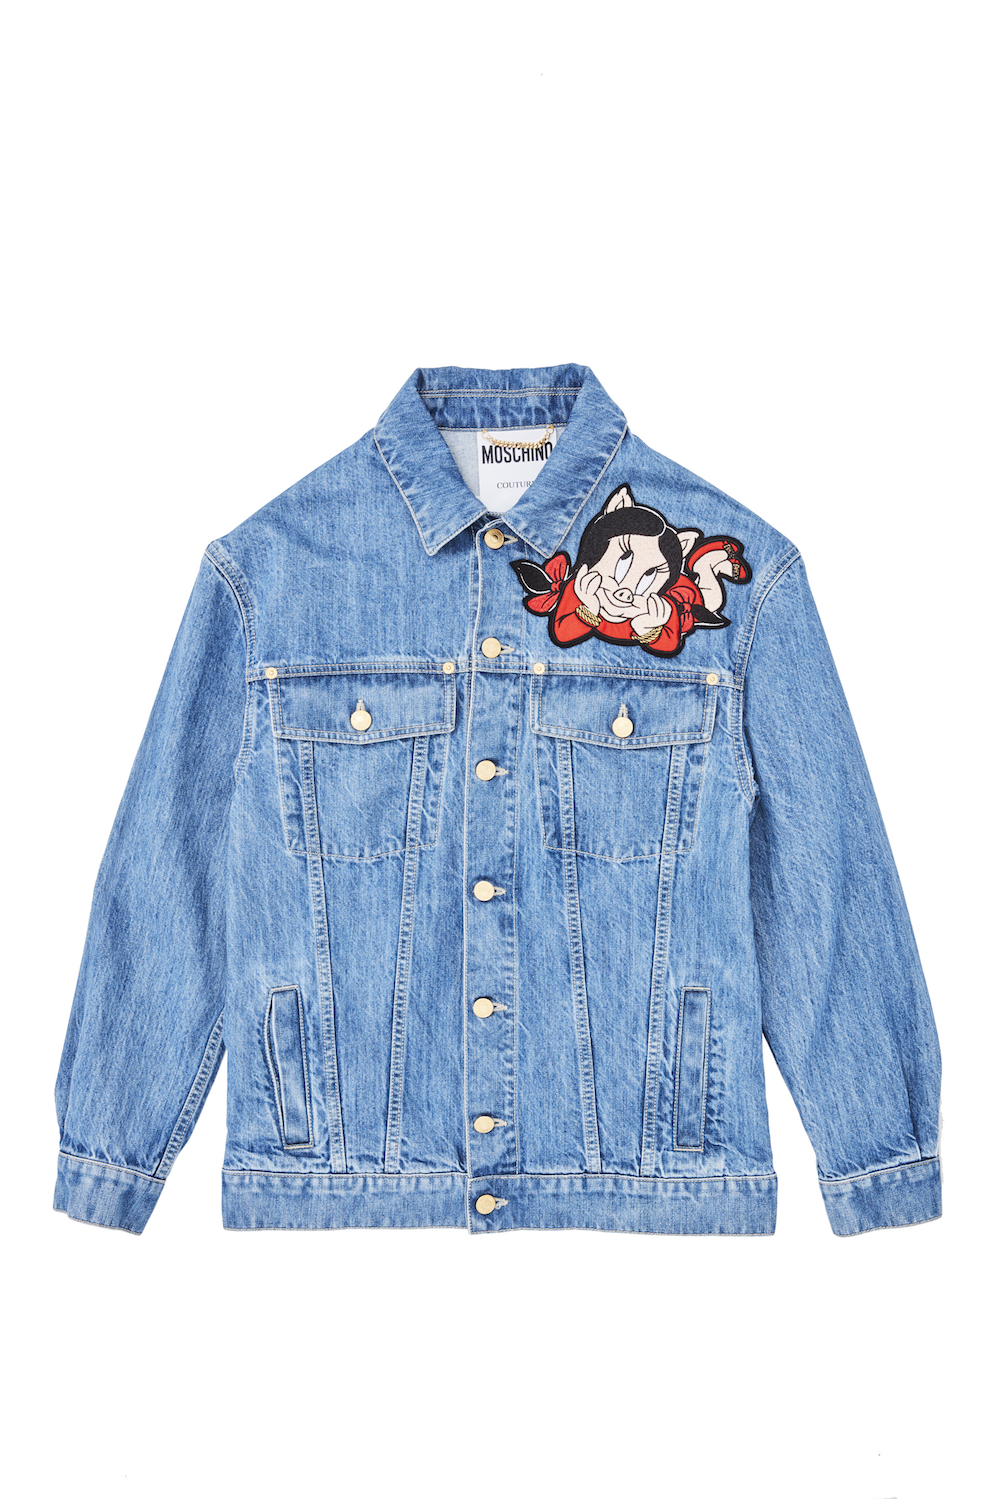 Moschino Chinese New Year Denim Cotton Jacket, $1,930 (Front)